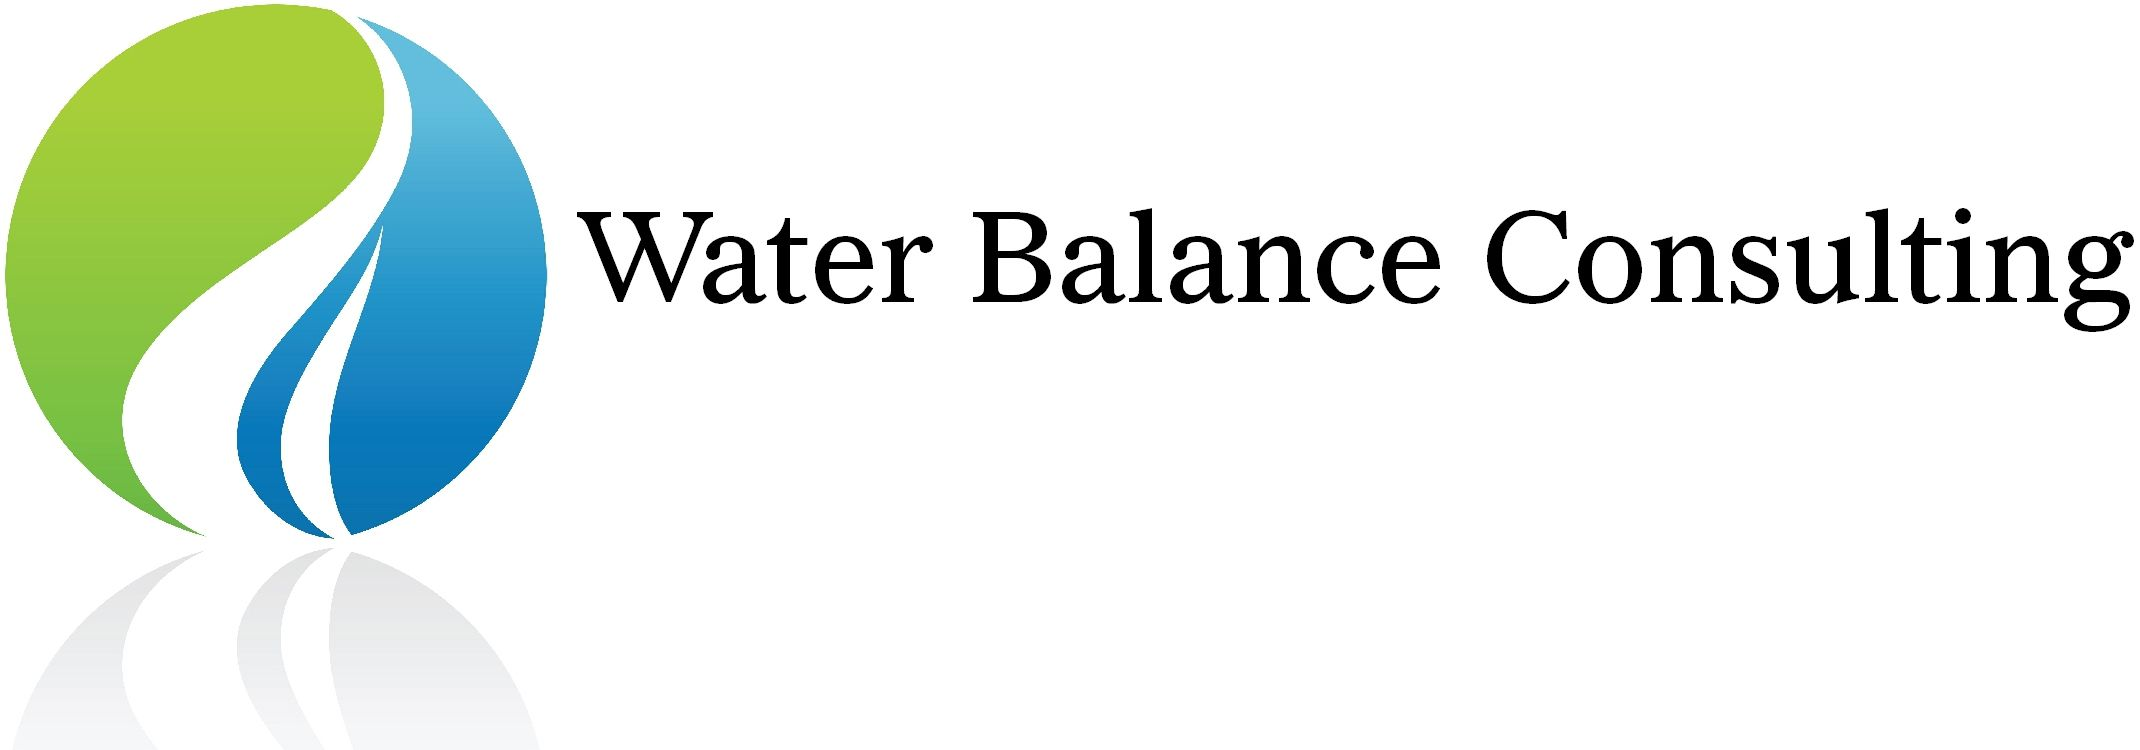 Water Balance Consulting